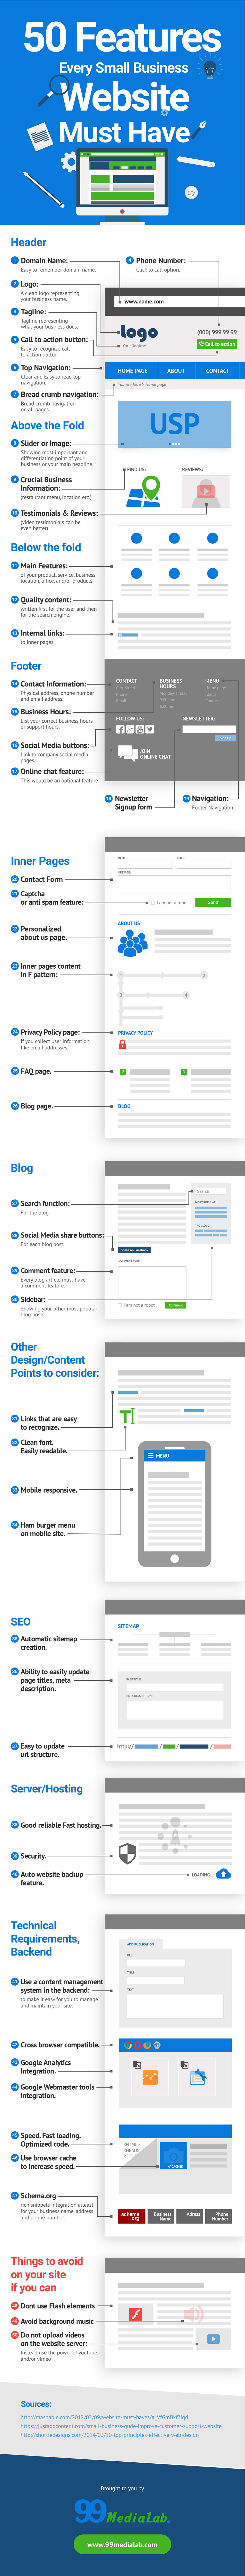 Features Small Business Website Must Have Infographic